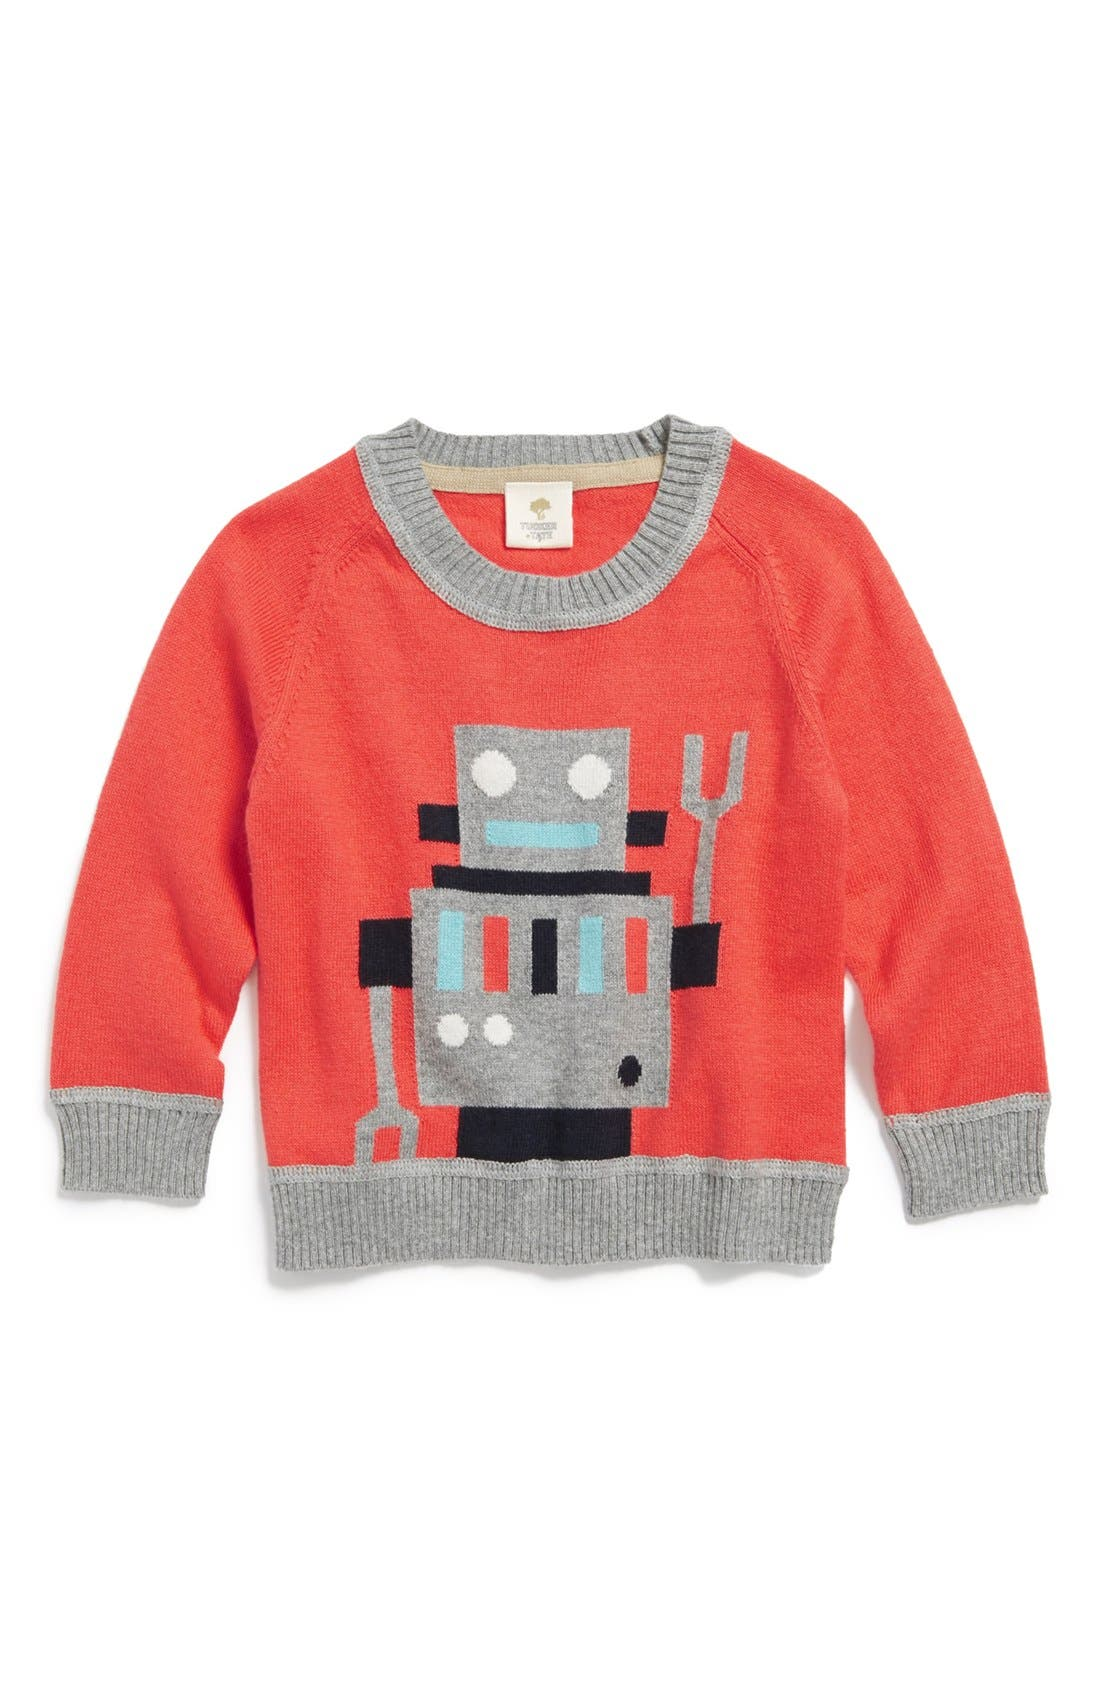 Alternate Image 1 Selected - Tucker + Tate Knit Cotton & Cashmere Crewneck Sweater (Baby Boys)